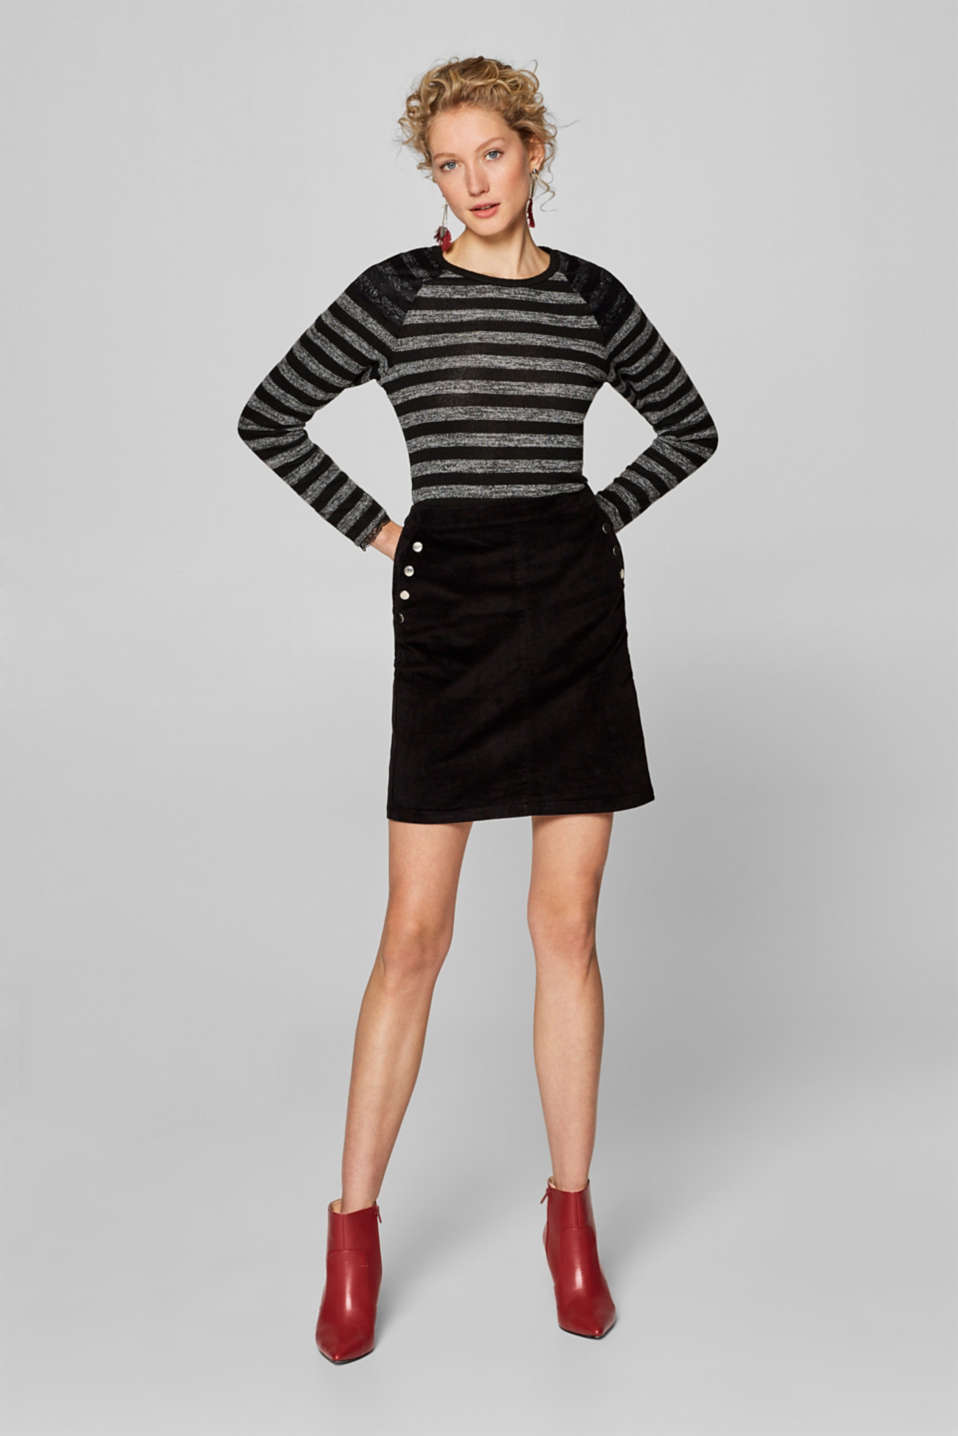 Esprit - Striped stretch tee trimmed with lace